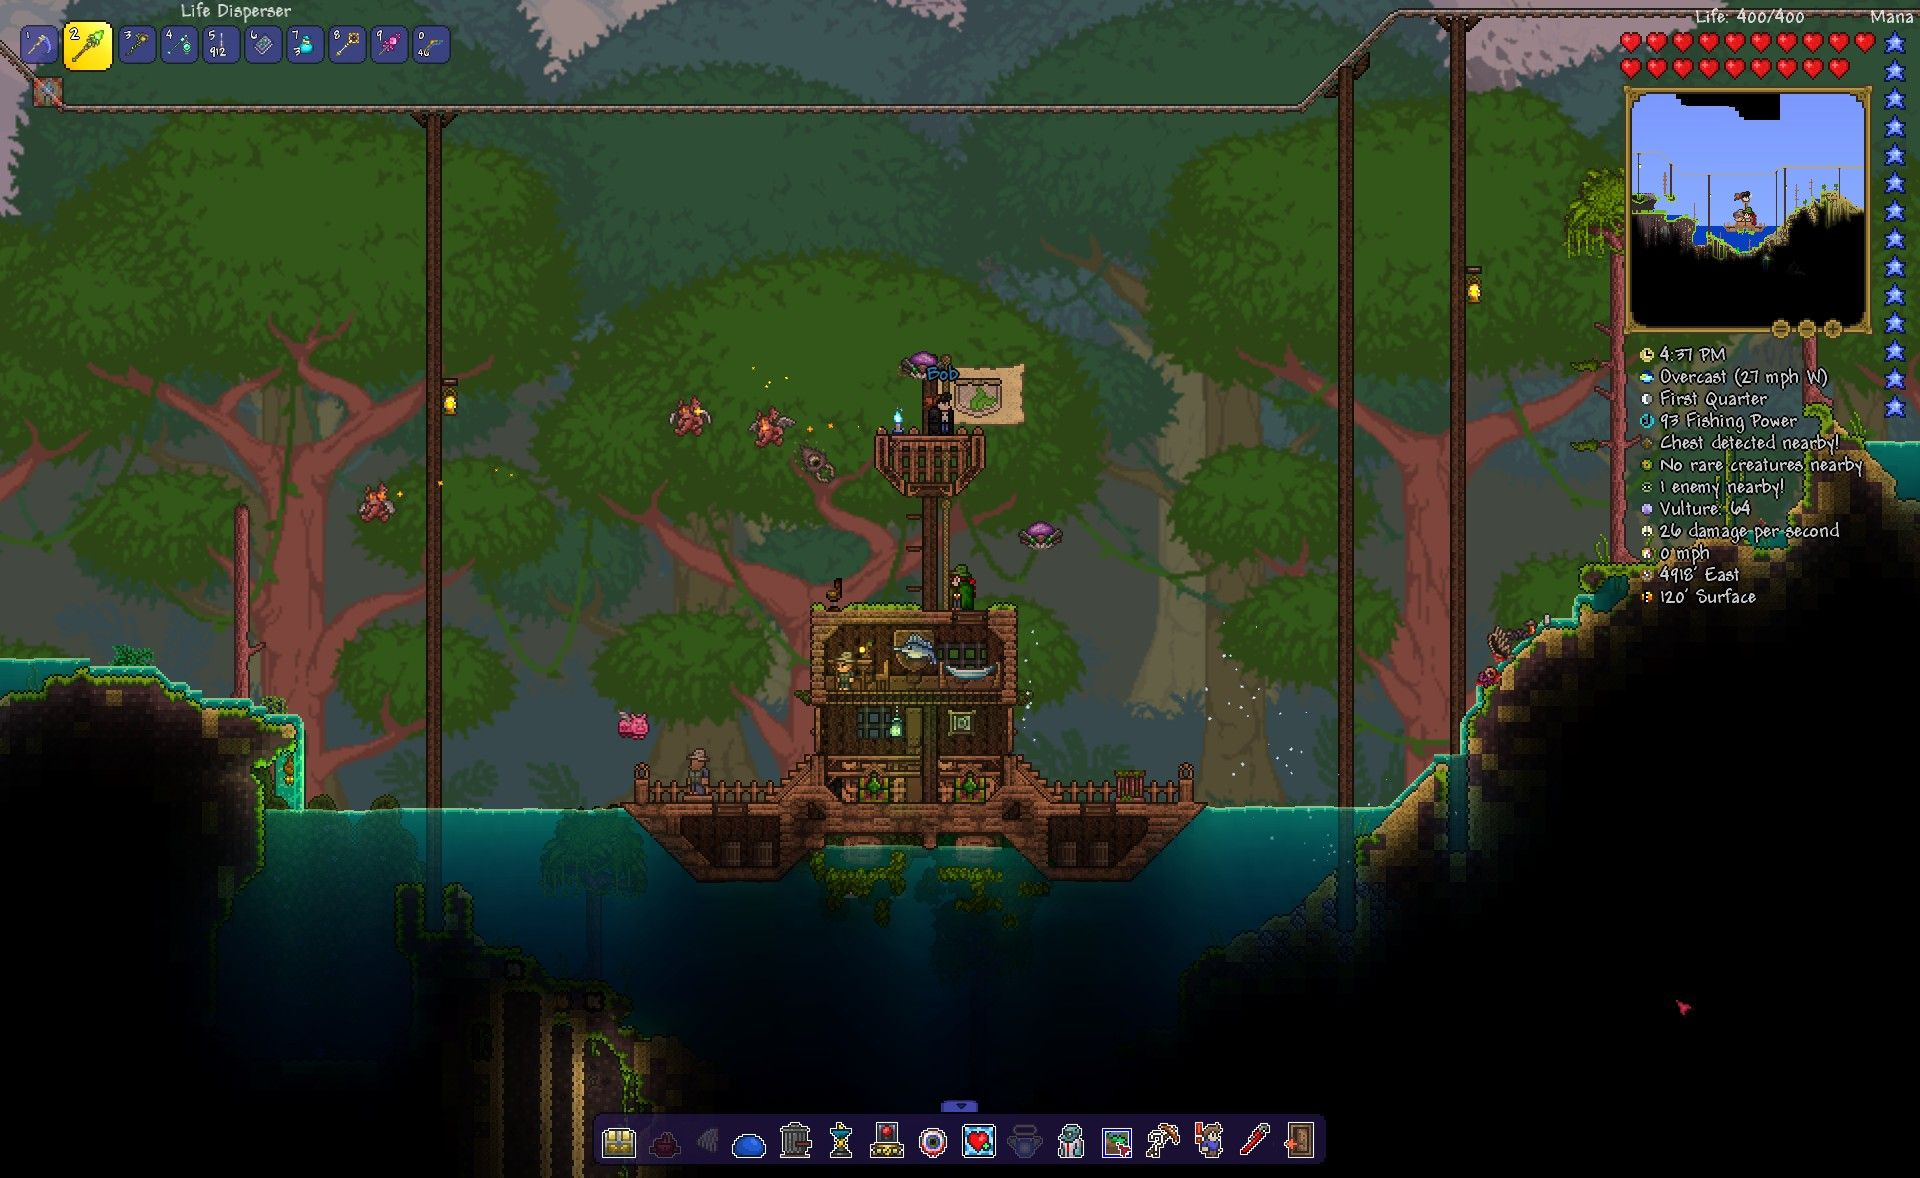 Pin by WhaleWzrd on terraria | Terrarium, Building